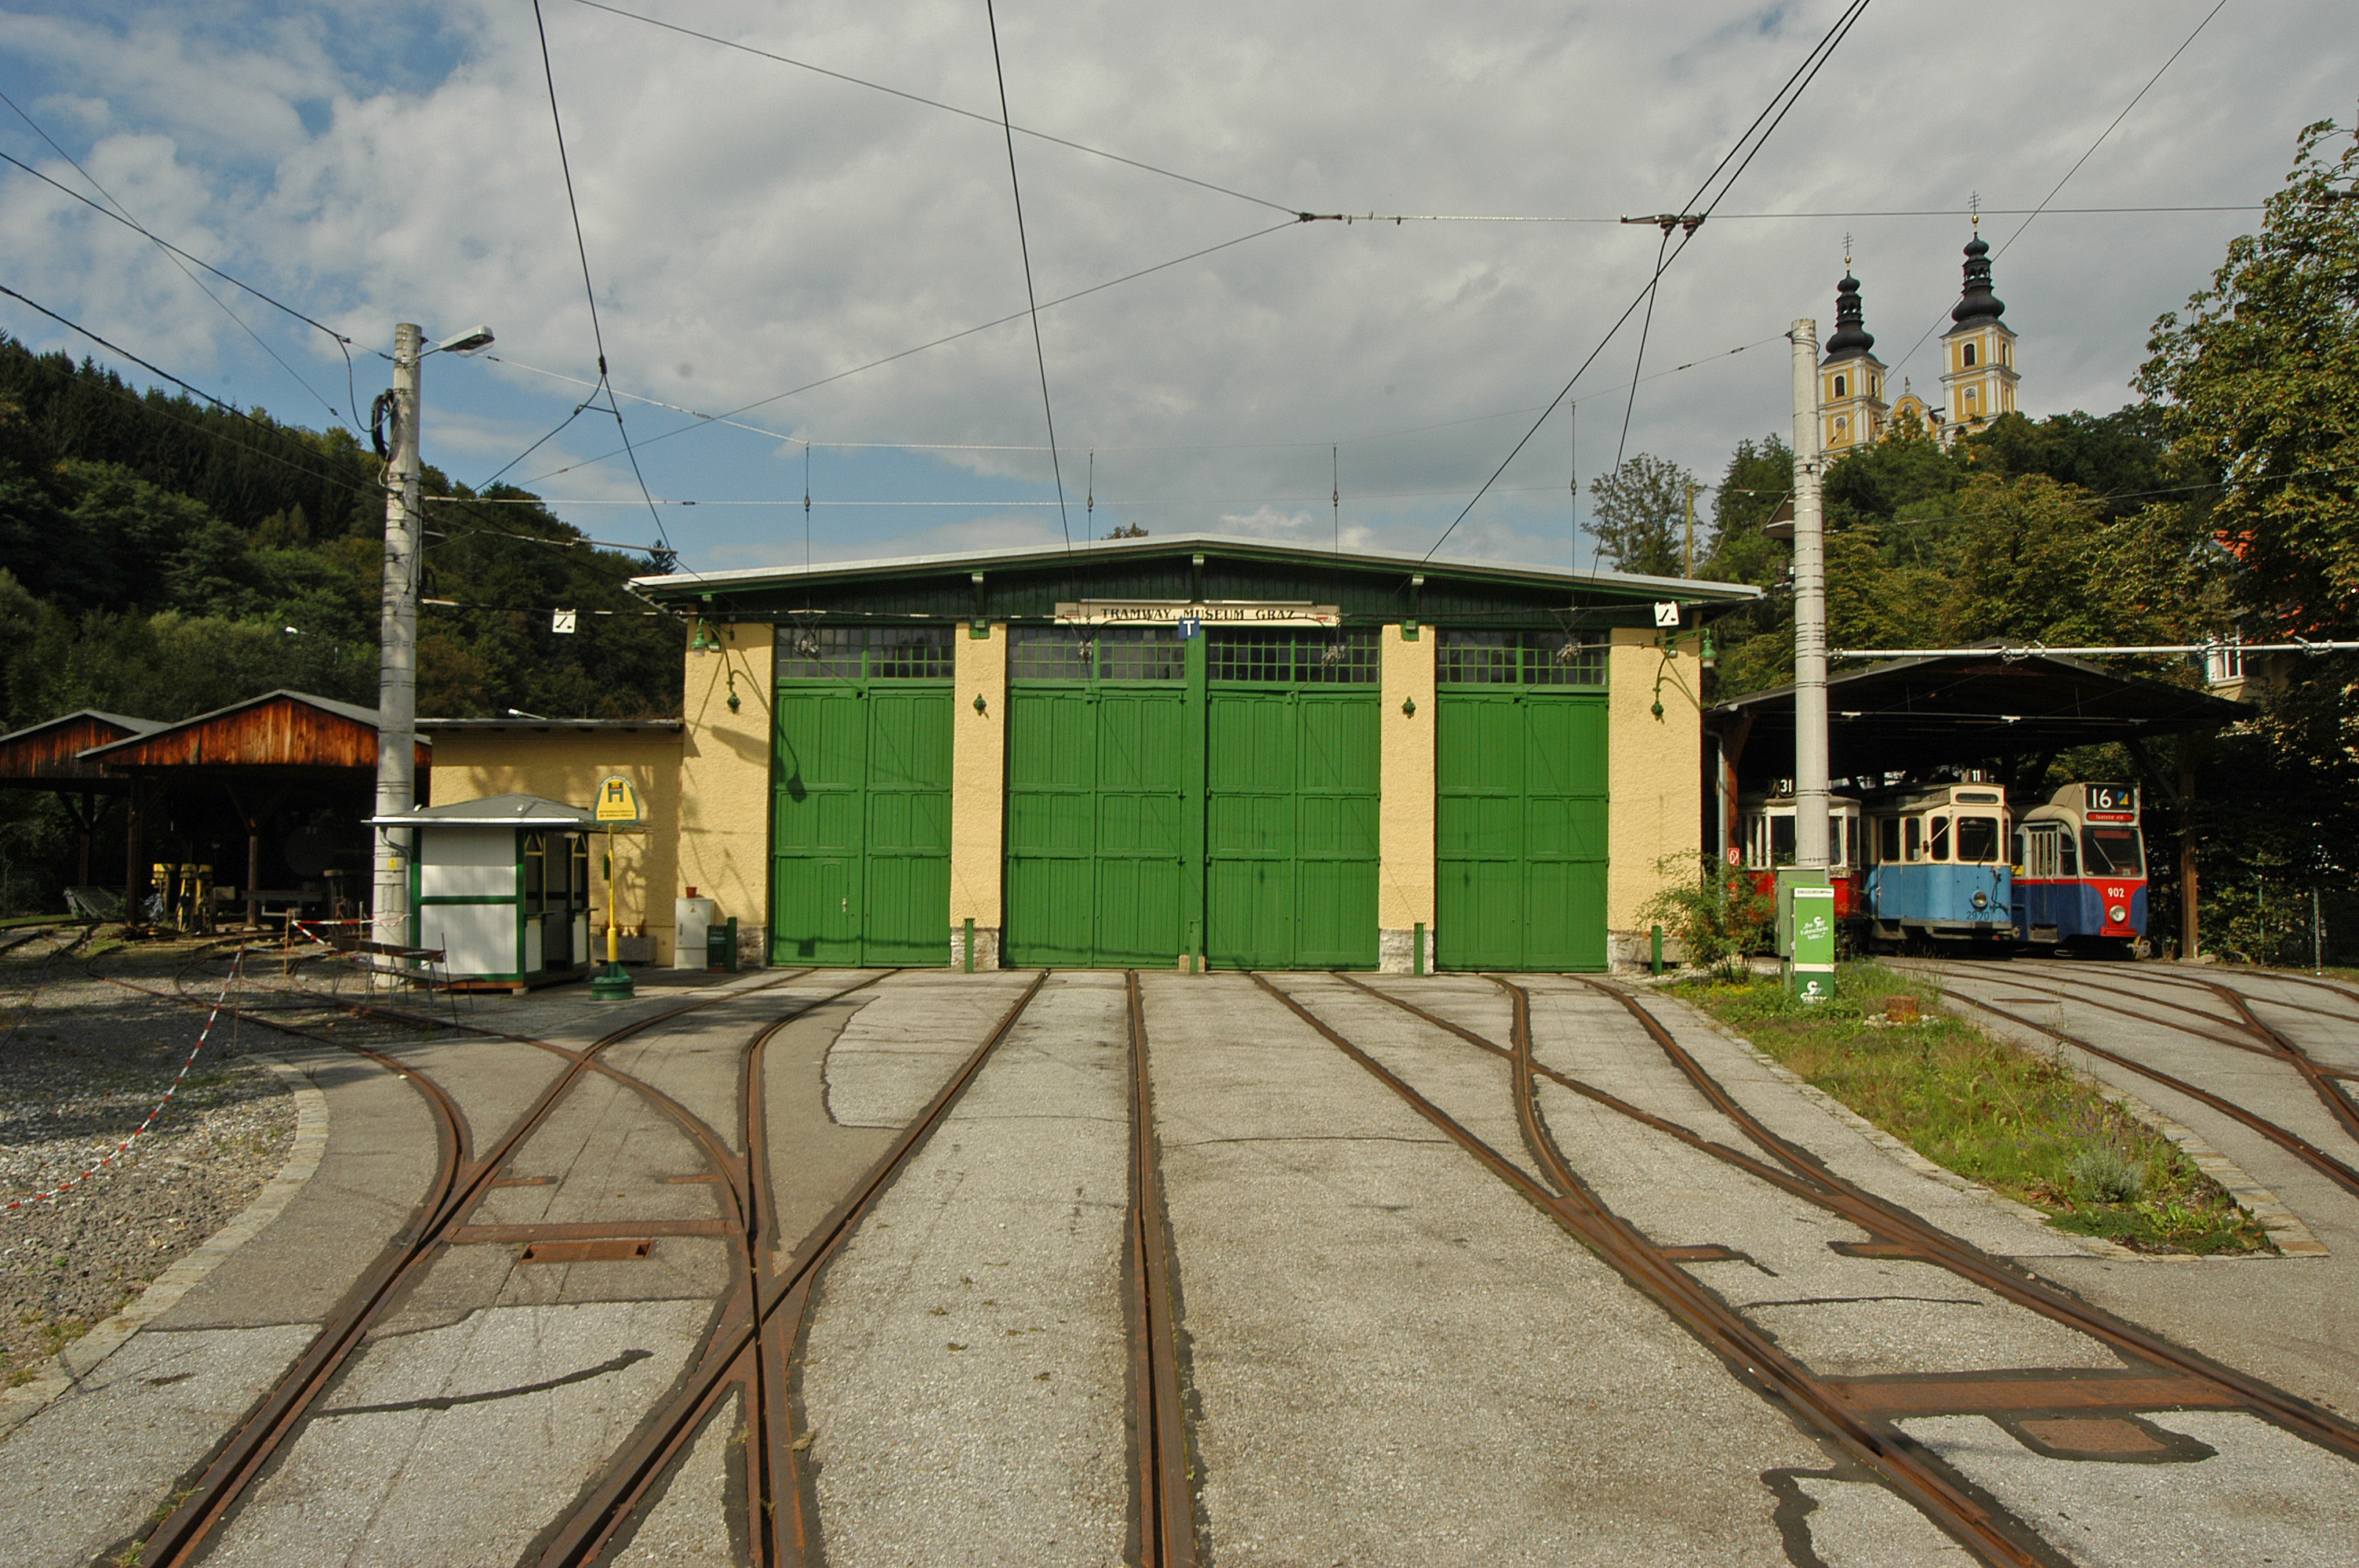 Tramway-Museum in Mariatrost